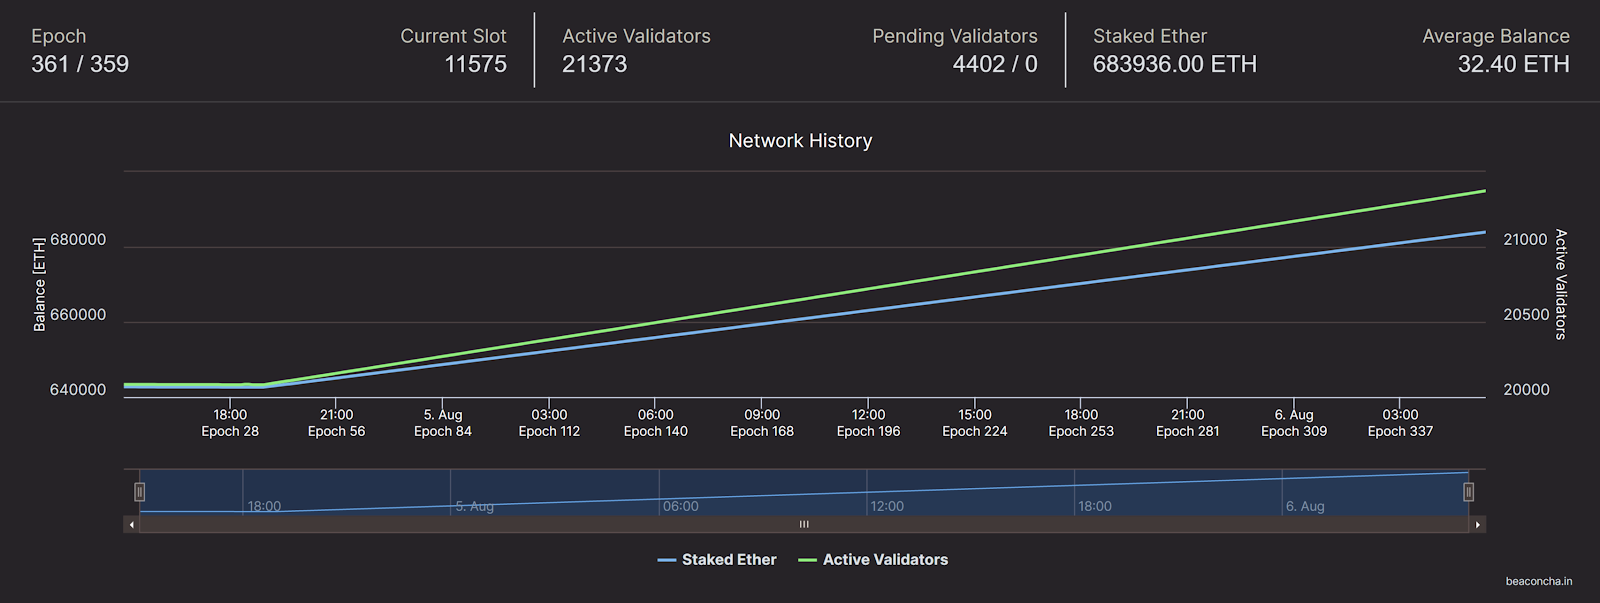 Chart illustrating staked Ether and active validators on the Medalla testnet. Source: beaconcha.in